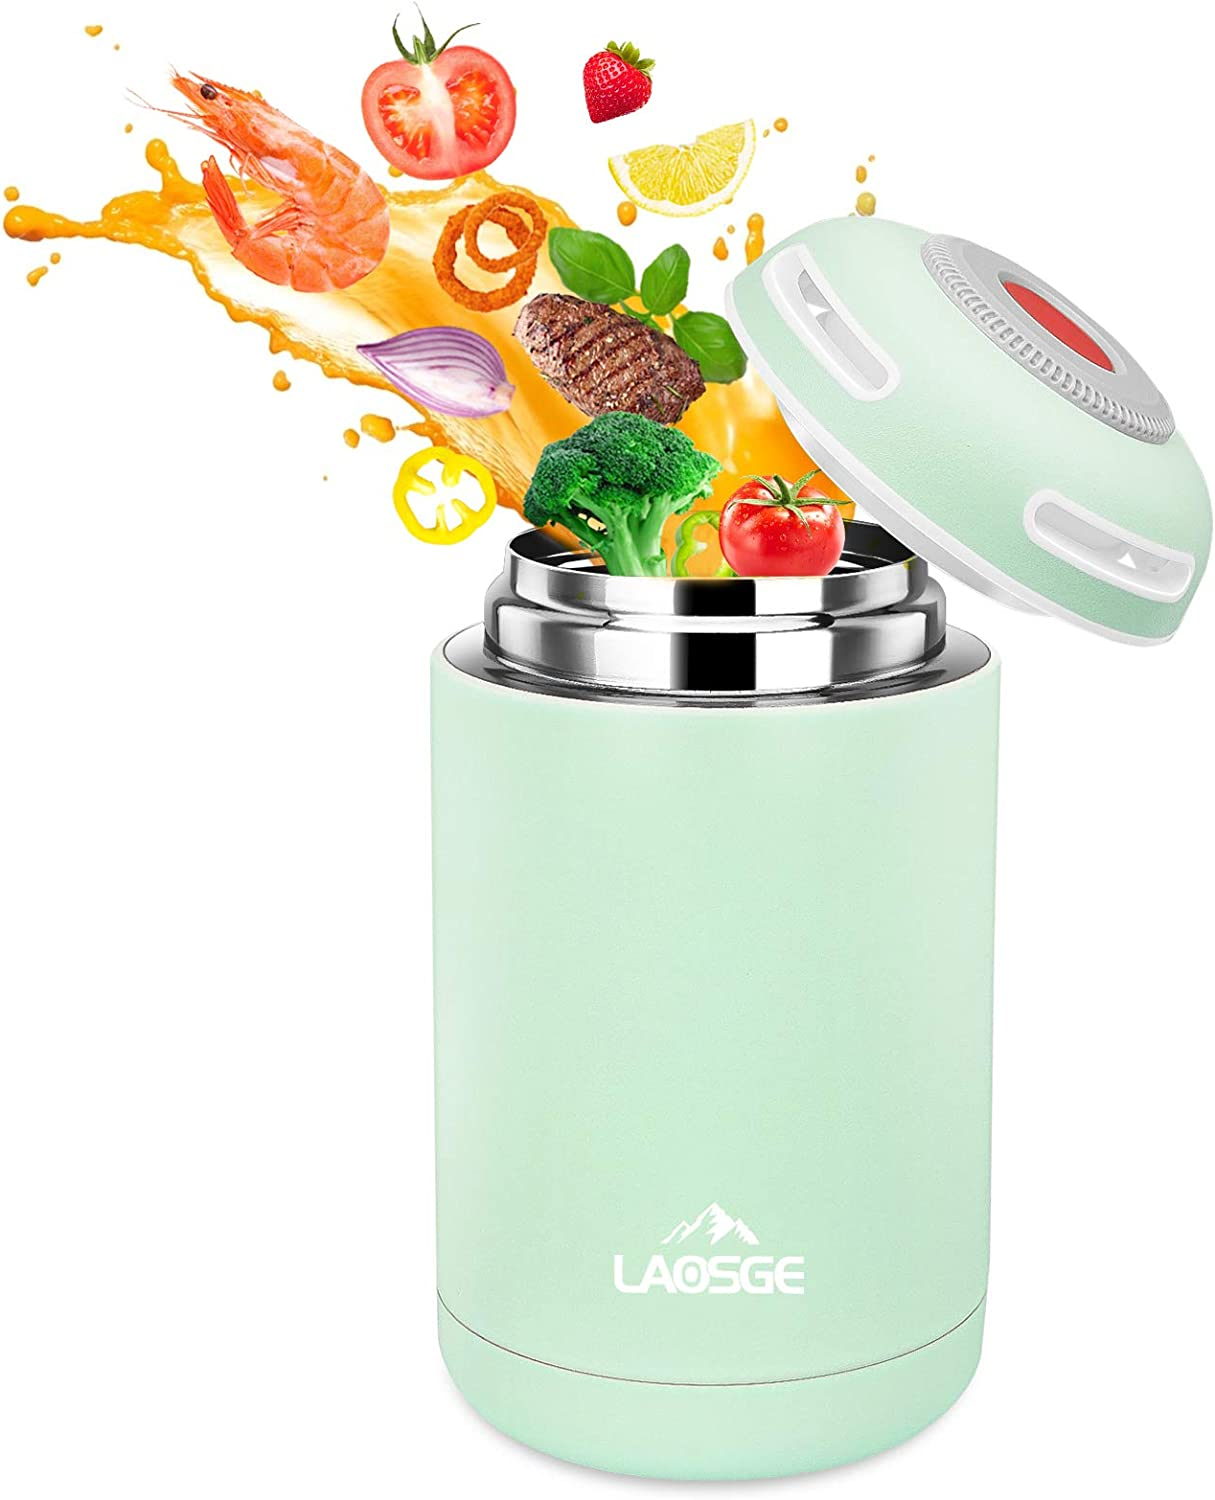 LAOSGE Vacuum Insulated Jar Lunch Container, 16 oz Thermos for Hot Food, Stainless Steel Lunch Box, BPA Free Lunch Soup Container, Leak Proof Double Wall Vacuum Insulated for Kids/Adults (Green)